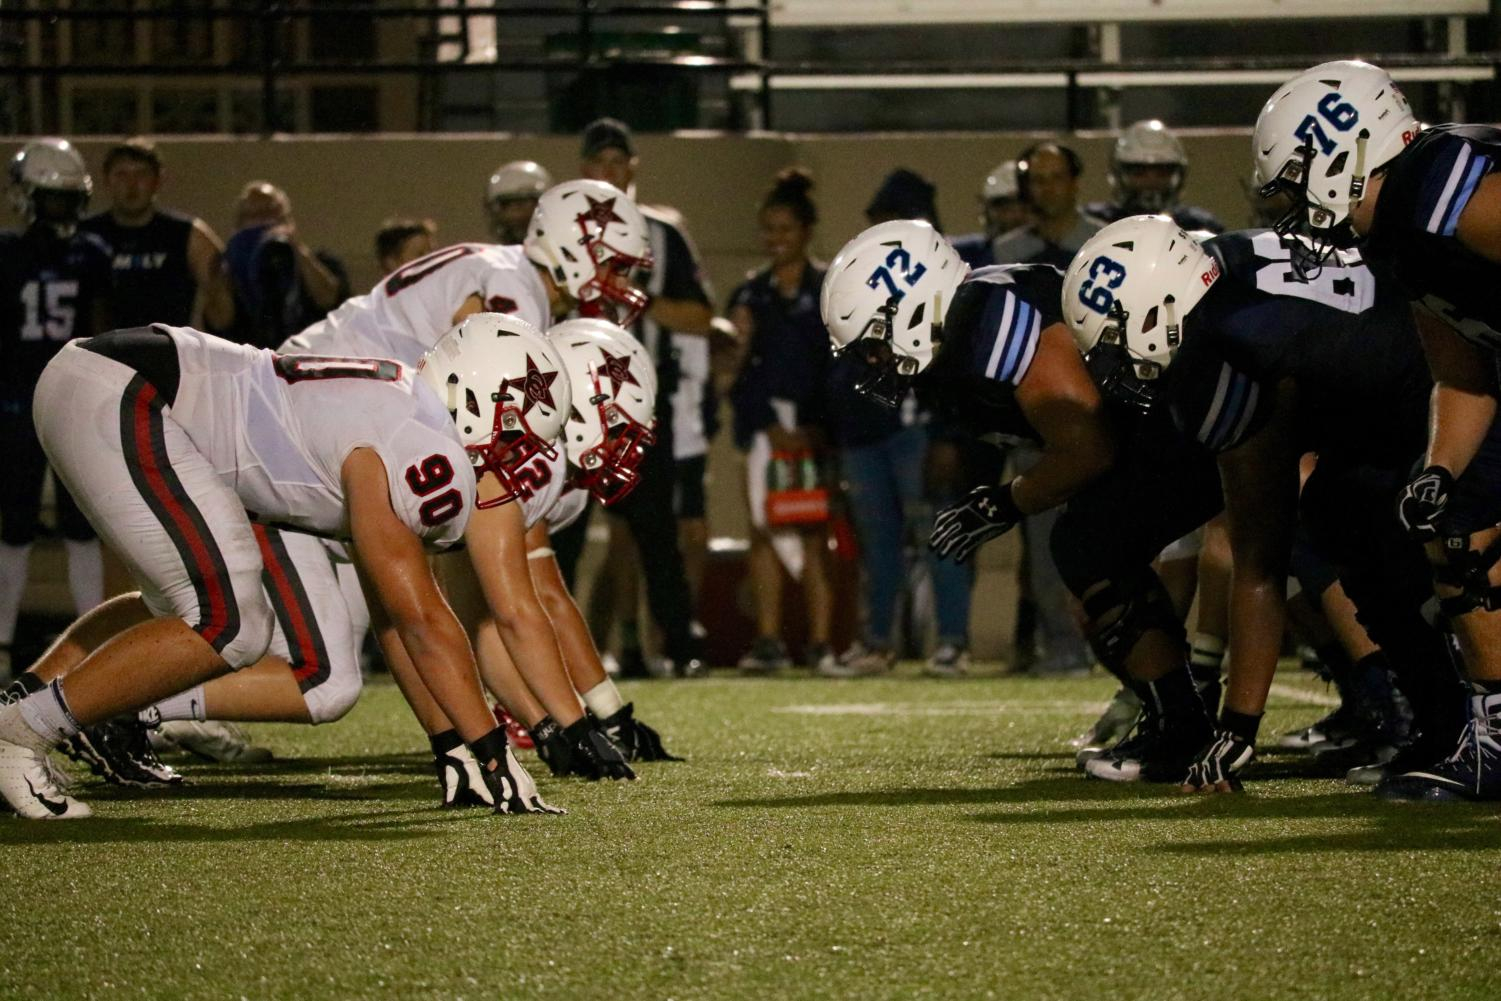 The Coppell Cowboys football team defeated the LD Bell Blue Raiders, 41-7, last Friday at Pennington Field. The Cowboys will play the Allen Eagles tomorrow night at Buddy Echols Field at 7 p.m.